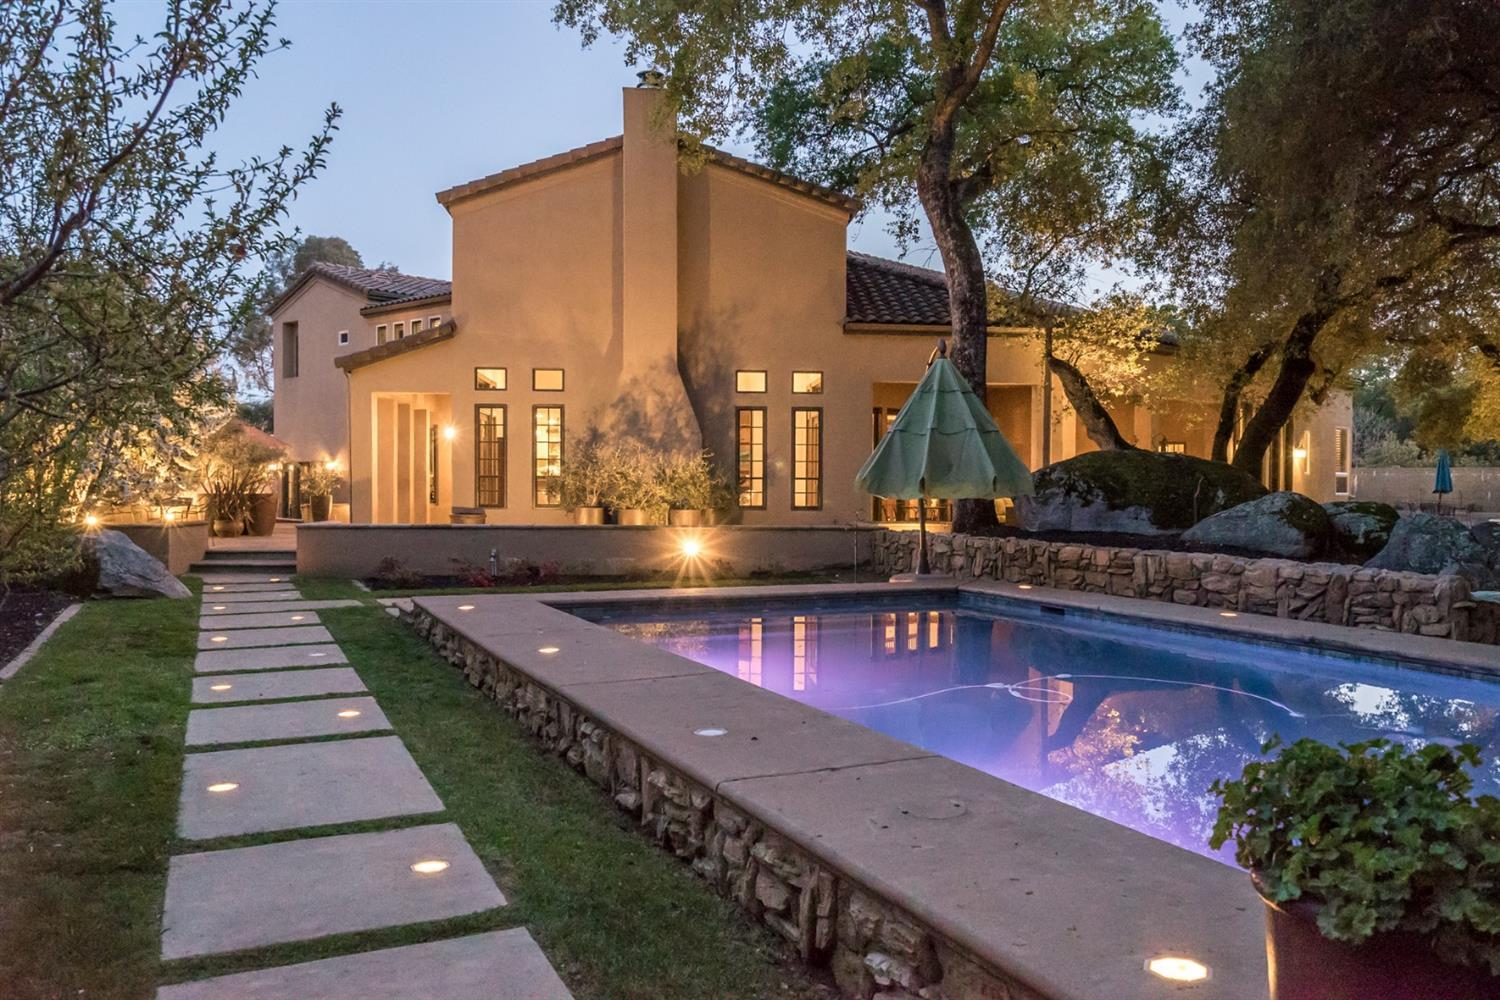 Quail Lake Real Estate | Find Homes for Sale in Quail Lake, CA ...